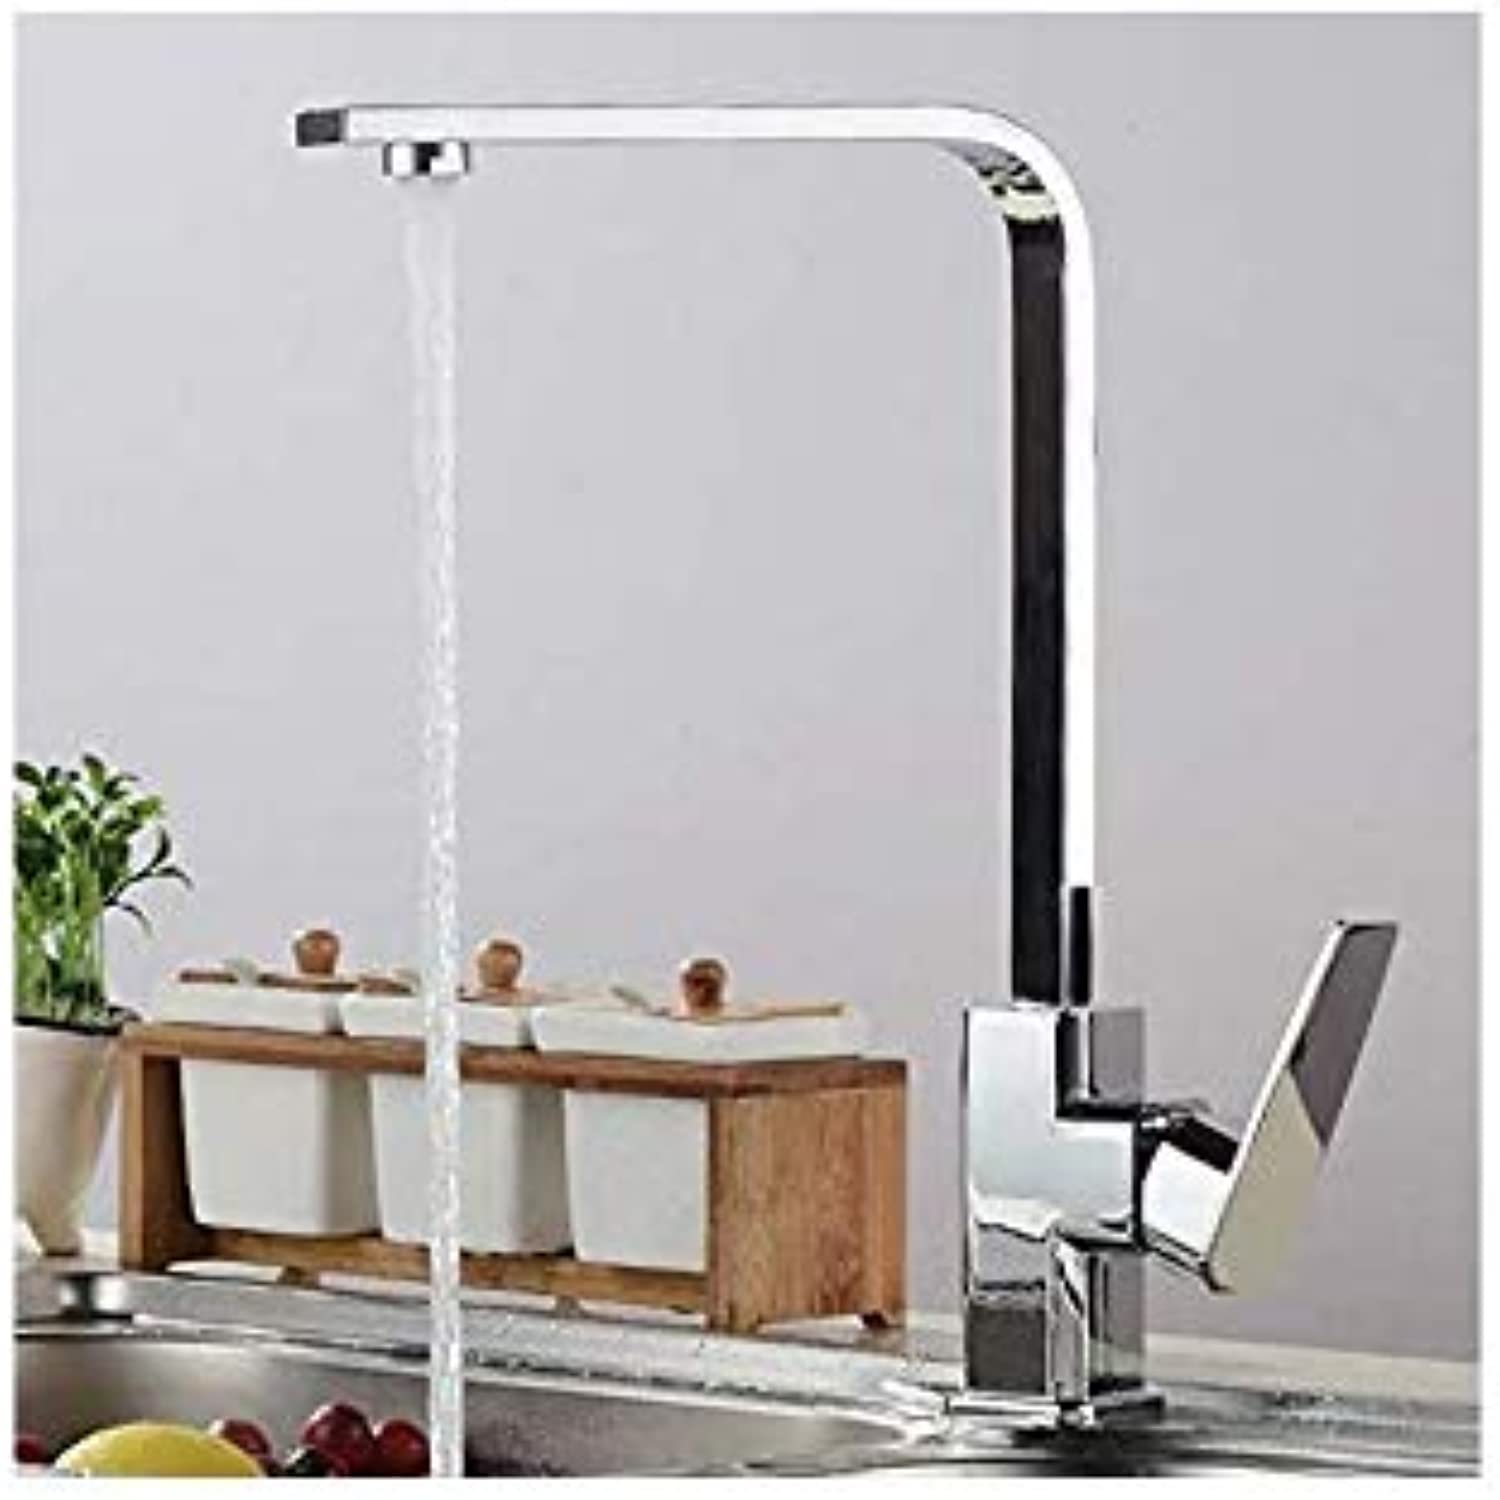 Water Tap Taps Faucet Copper Faucet Copper Hot and Cold Kitchen Faucet Brushed Hand-Turning Basin Square Faucet, Electroplating